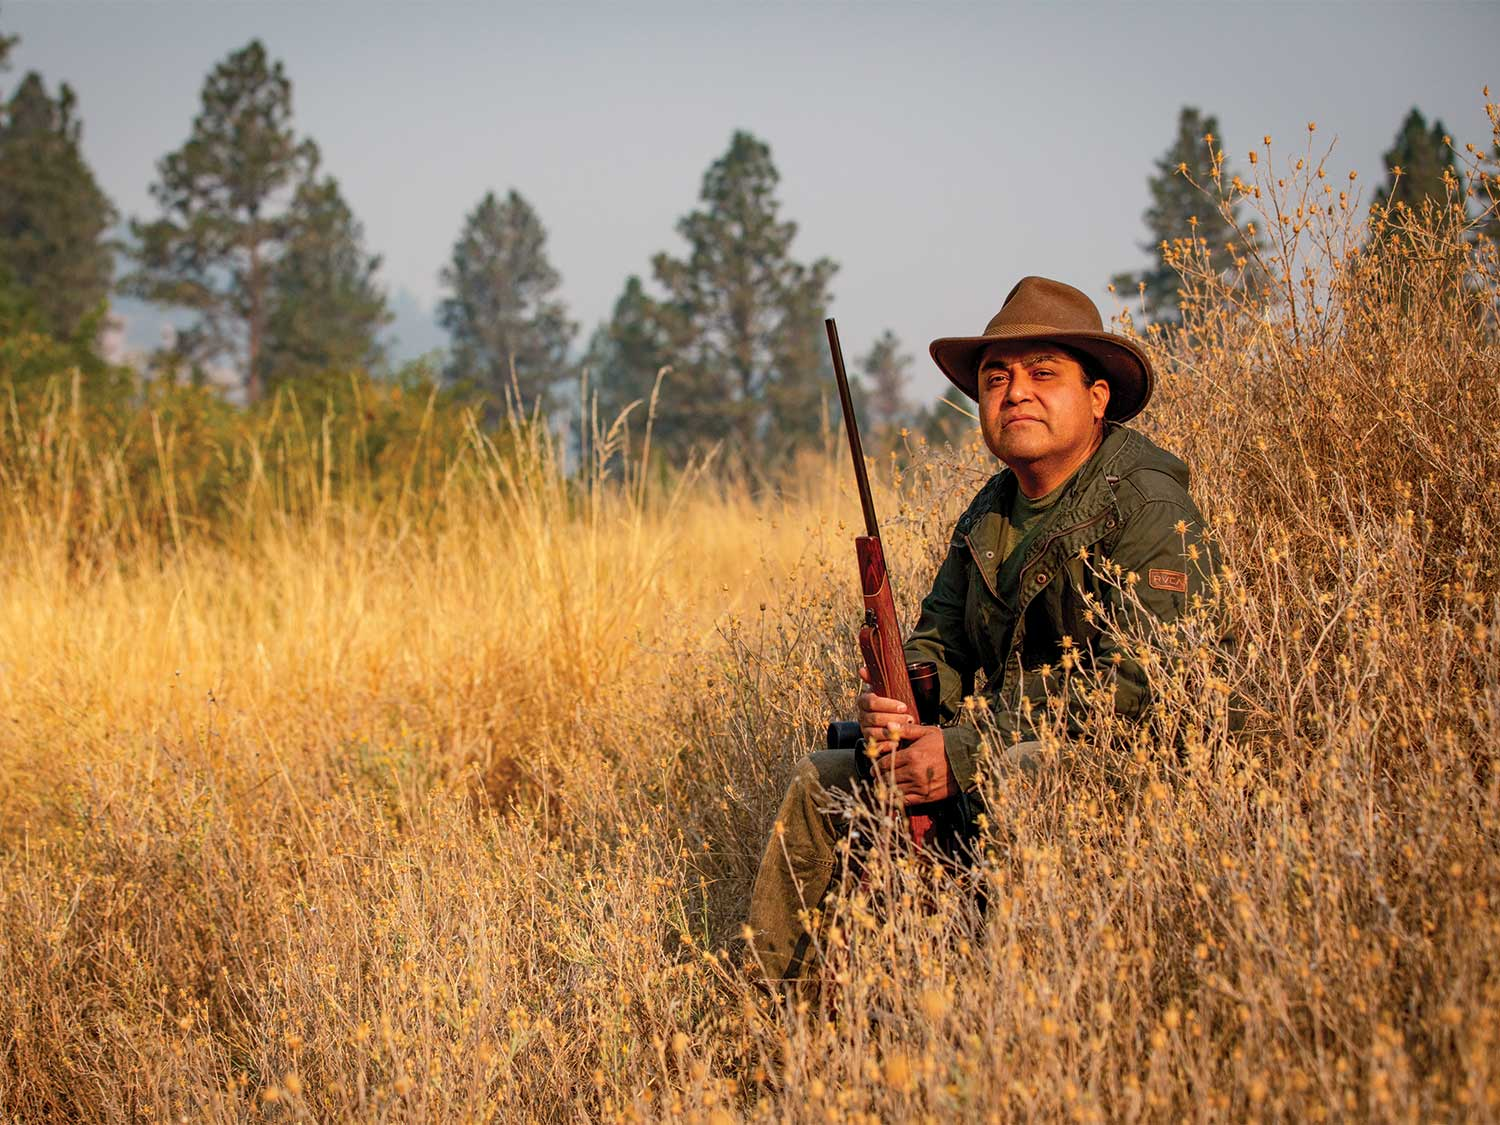 A native hunter, Josiah Pinkham, sits in a field of tall weeds and holds a rifle.